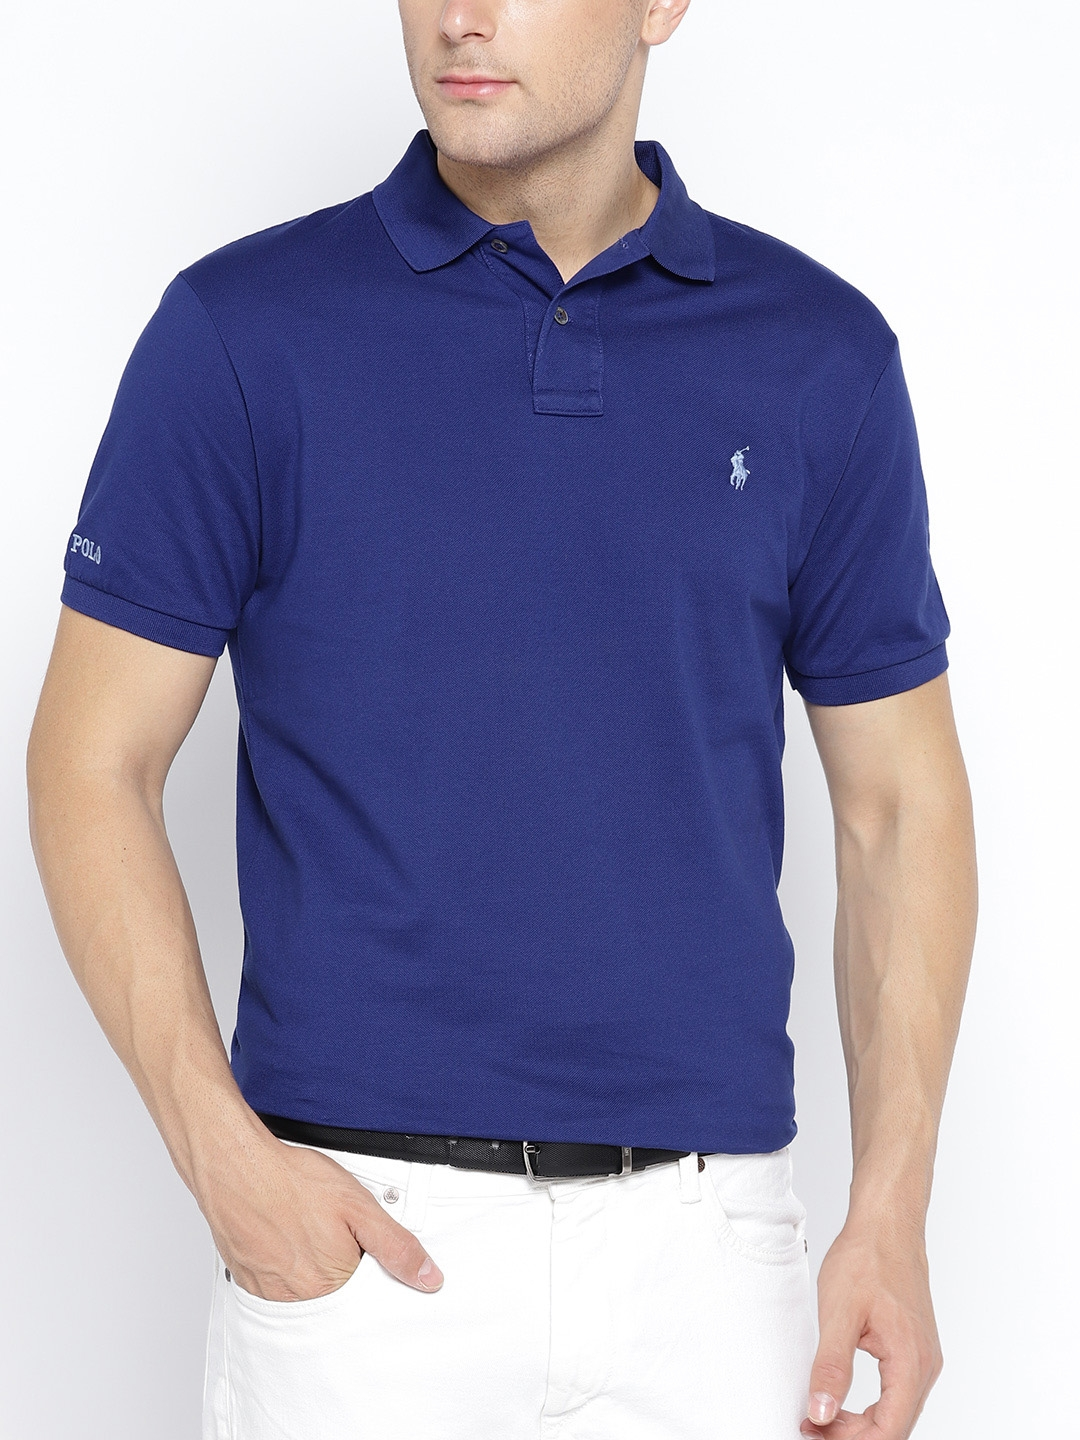 828e85d373a Buy Polo Ralph Lauren Custom Slim Fit Mesh Polo Shirt - Tshirts for ...